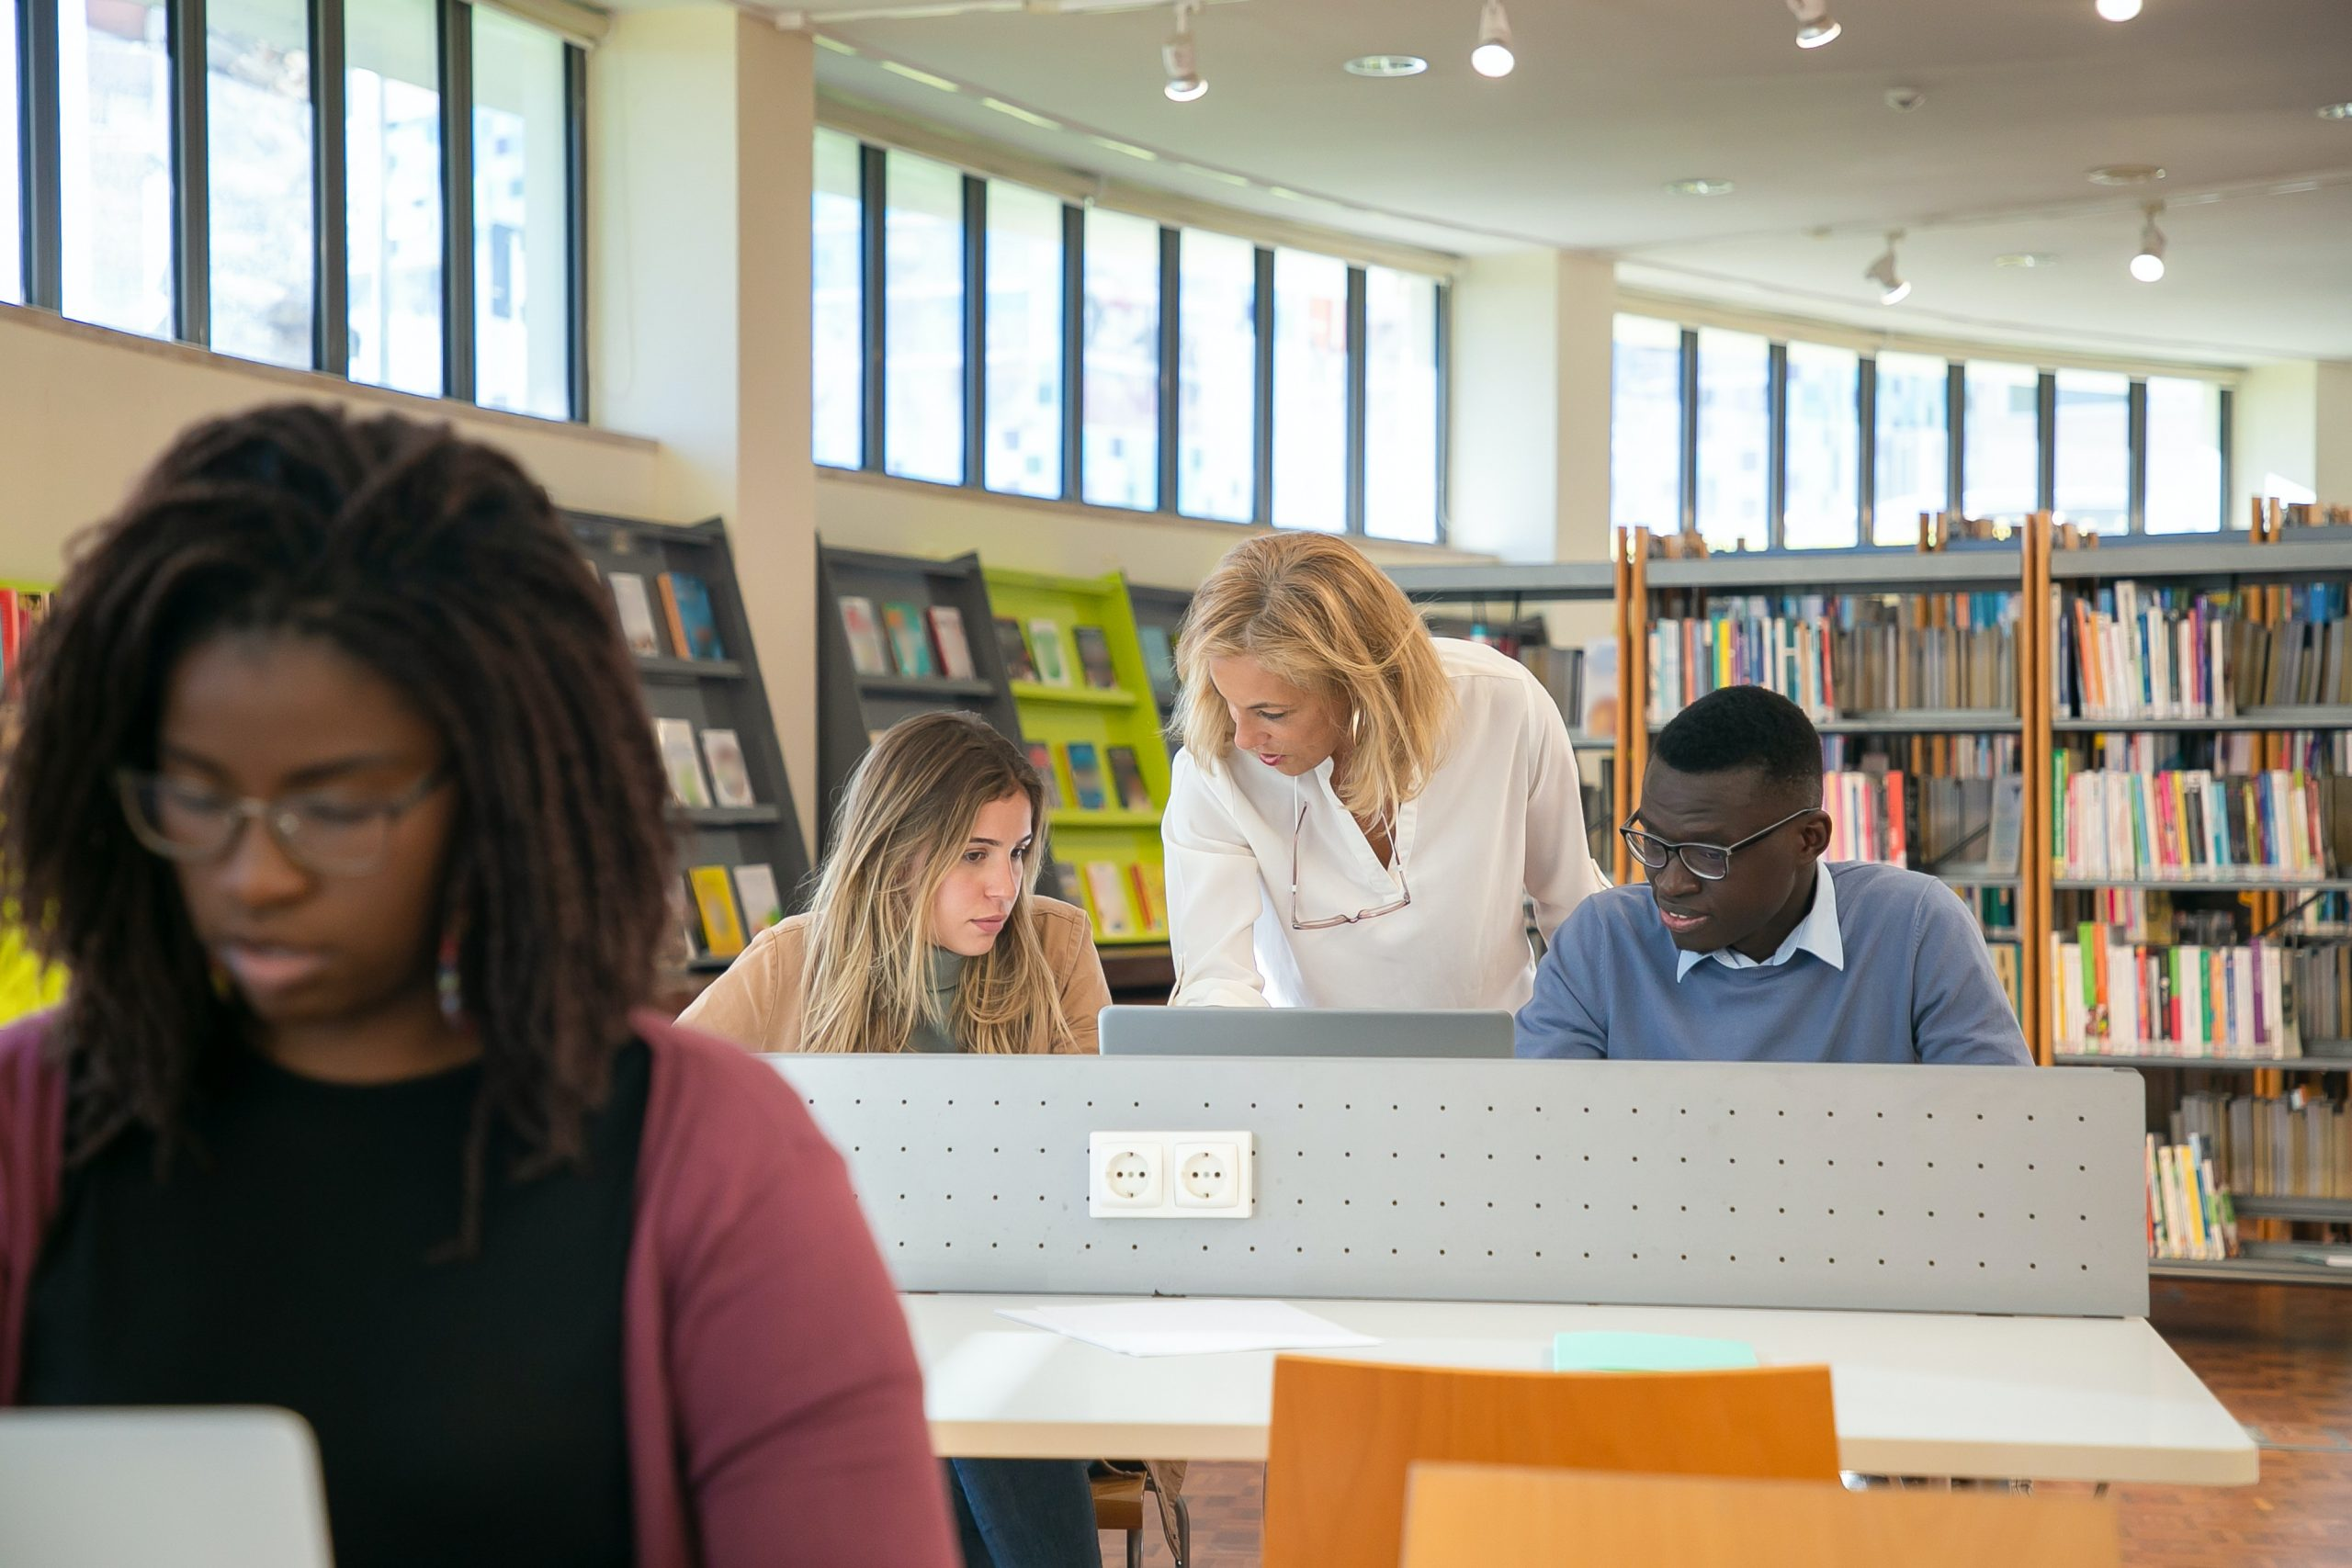 Lady helping students in library